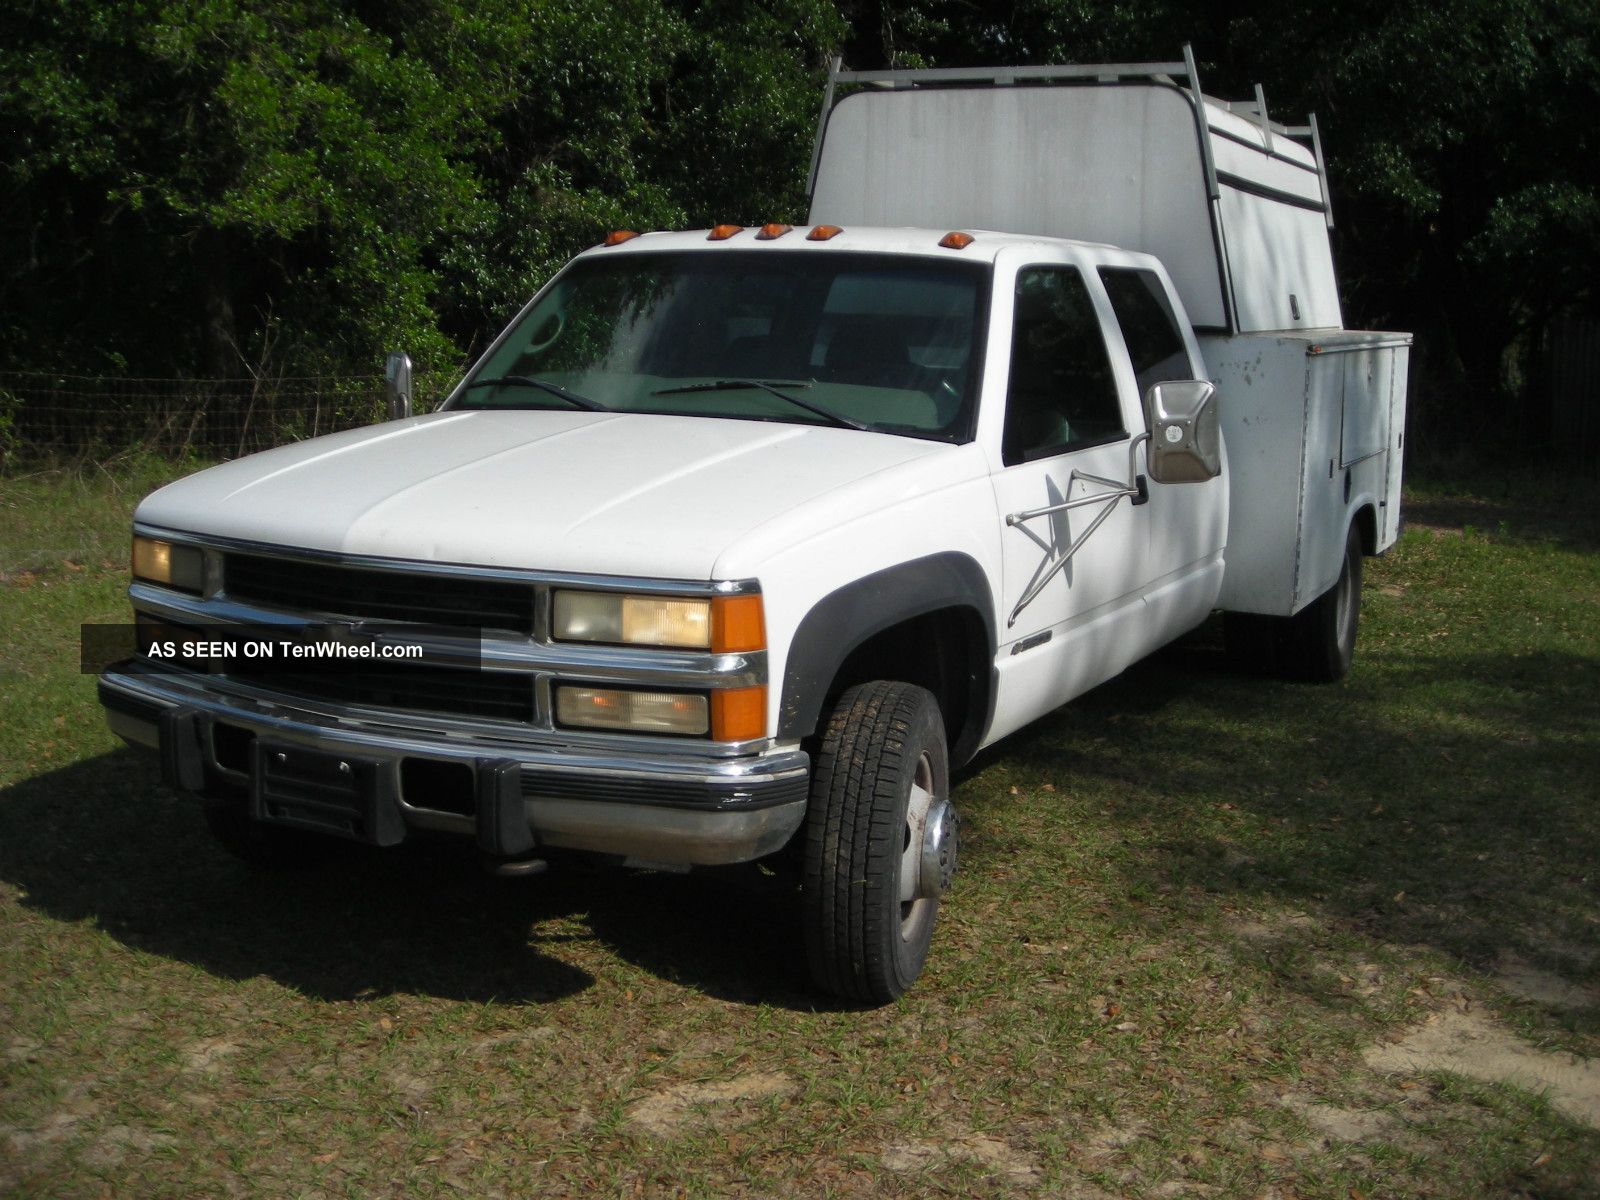 Chevrolet Wd Dually Diesel Crew Cab Pick Up Enclosed Bed Crane Winch Lgw on 1998 Dodge 3500 Dually